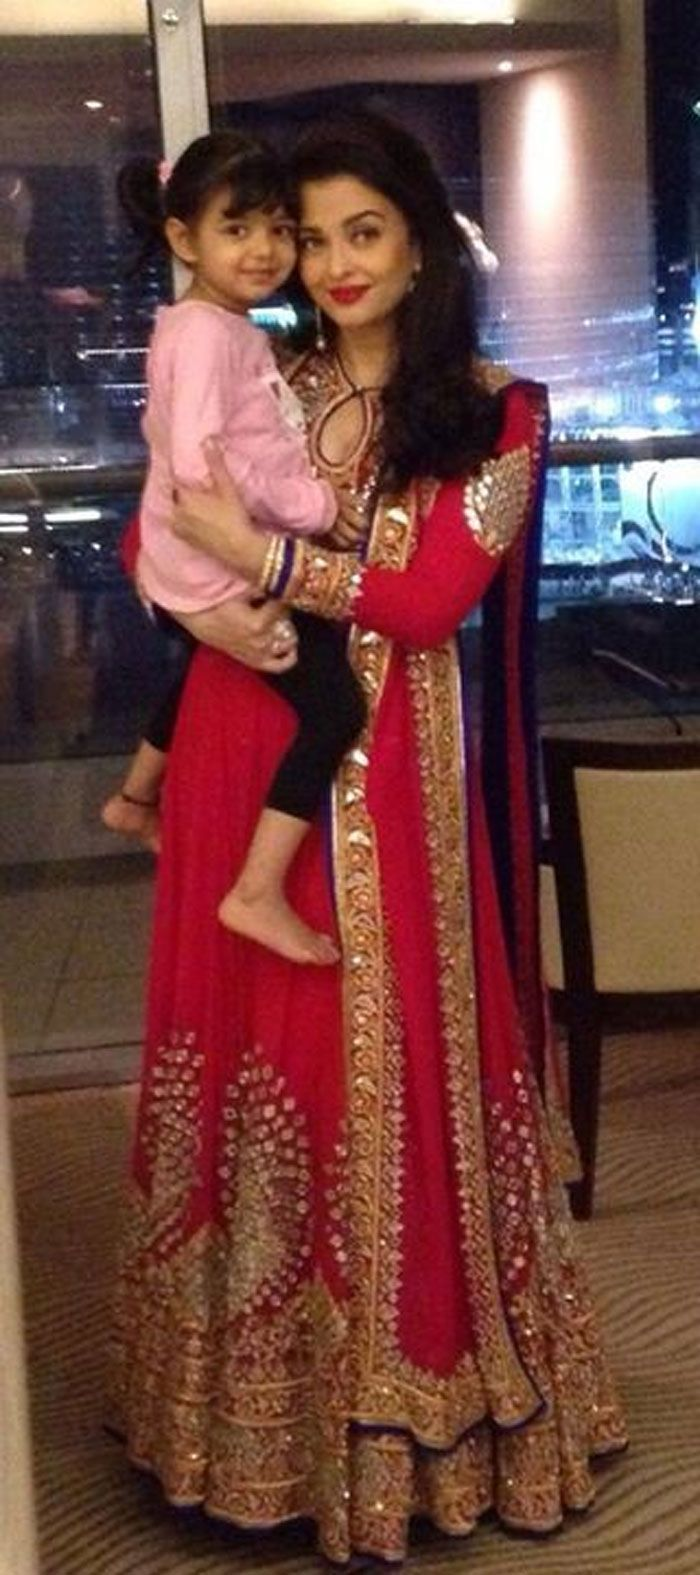 Aishwarya Rai Bachchan and birthday girl Aaradhya were in Dubai